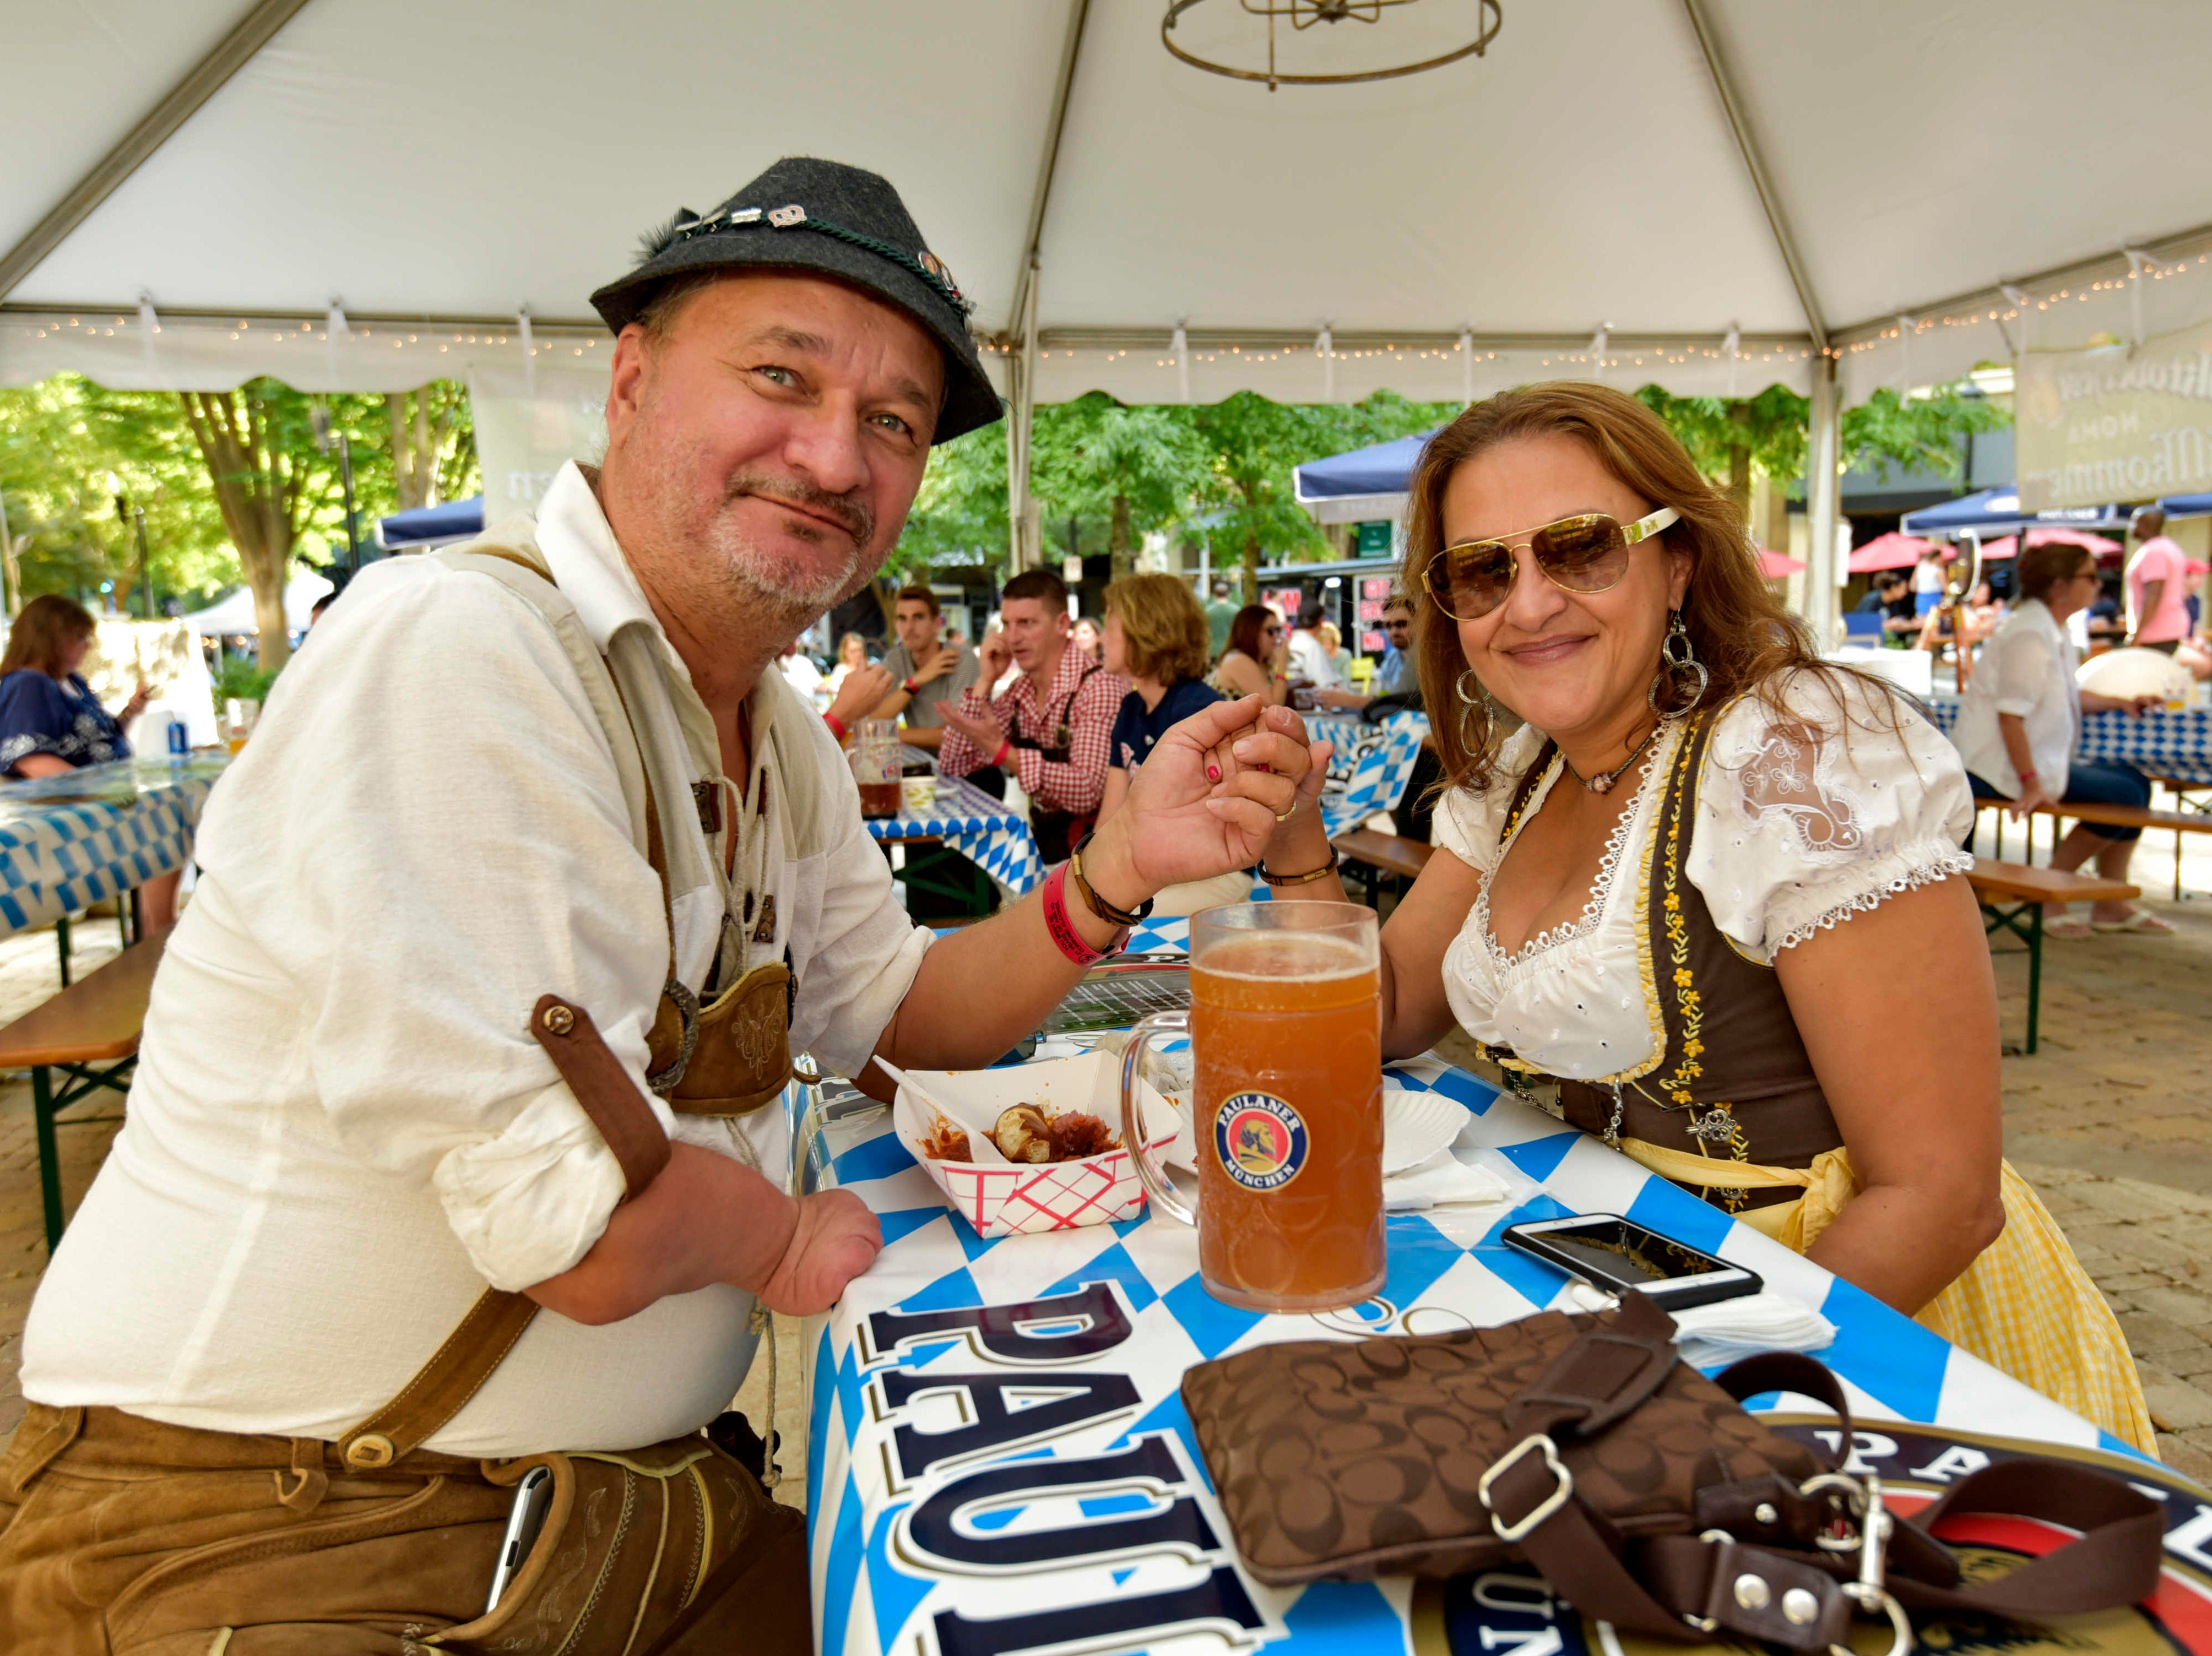 Michael and Daisy Gergolla attend Oktoberfest which kicked off at NOMA Square in downtown Greenville Thursday, Oct. 4,  2018.